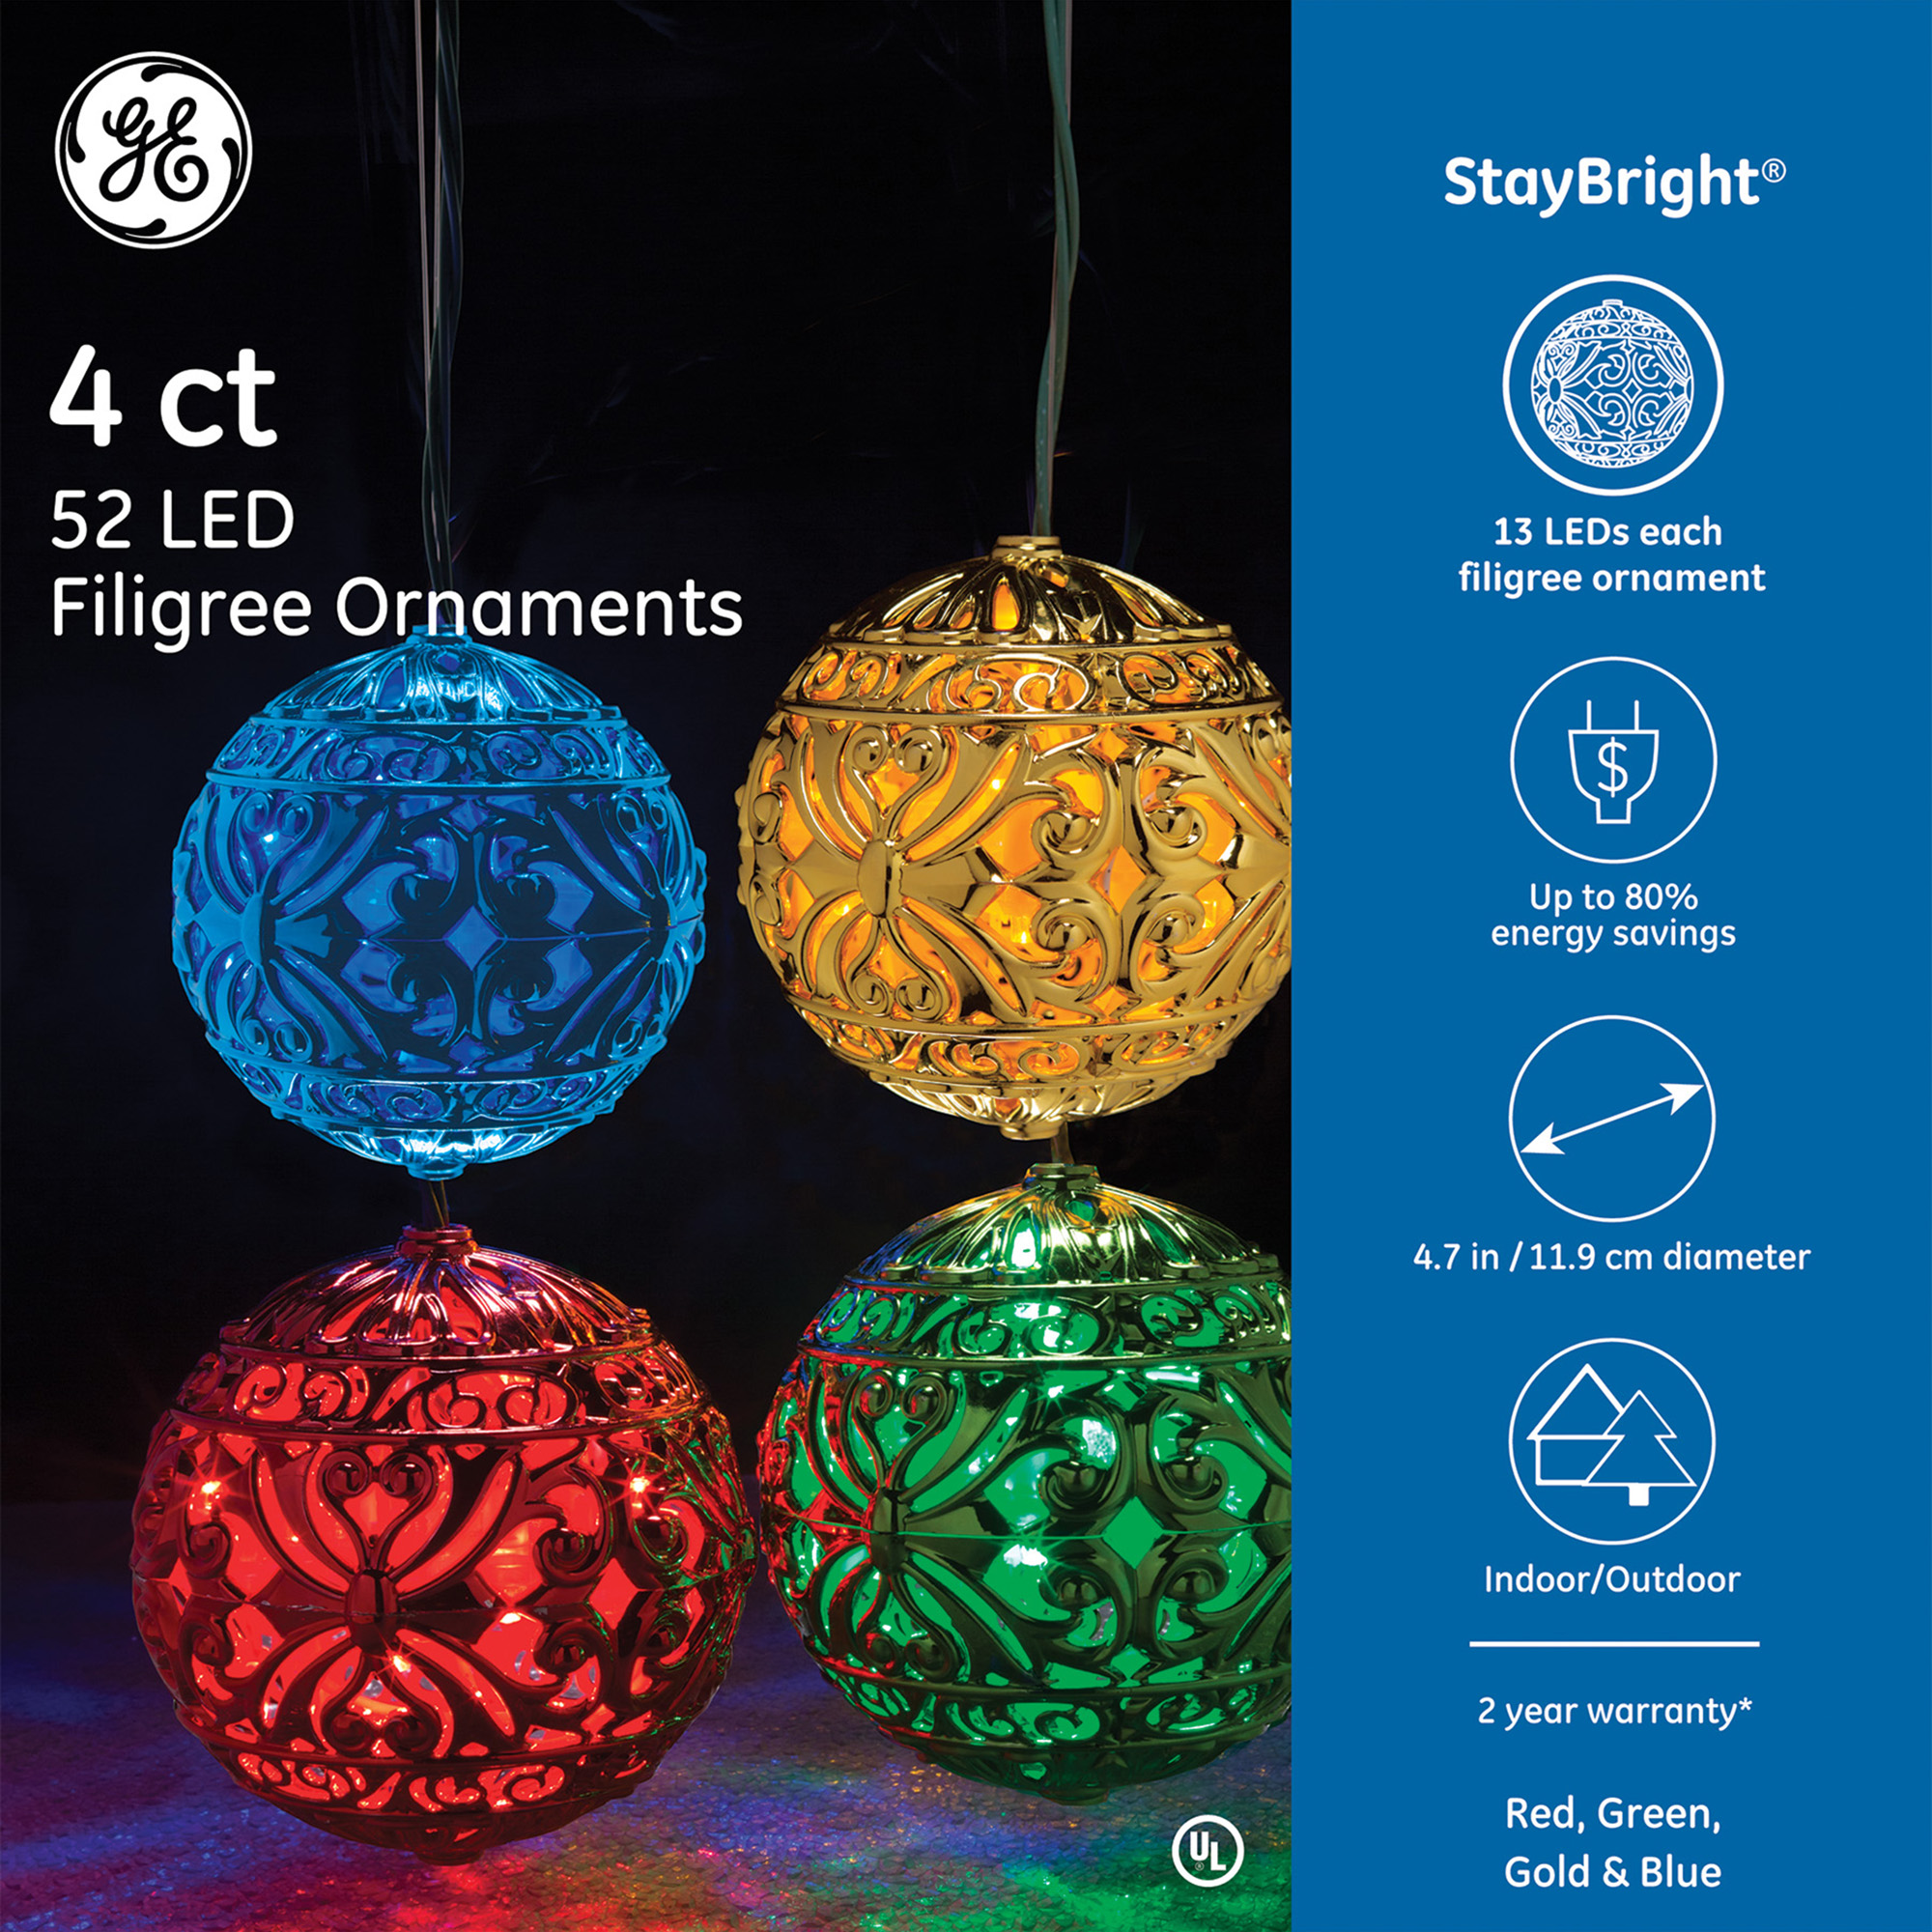 GE 4CT 52 LED Filigree Ornaments, Mixed Color Set